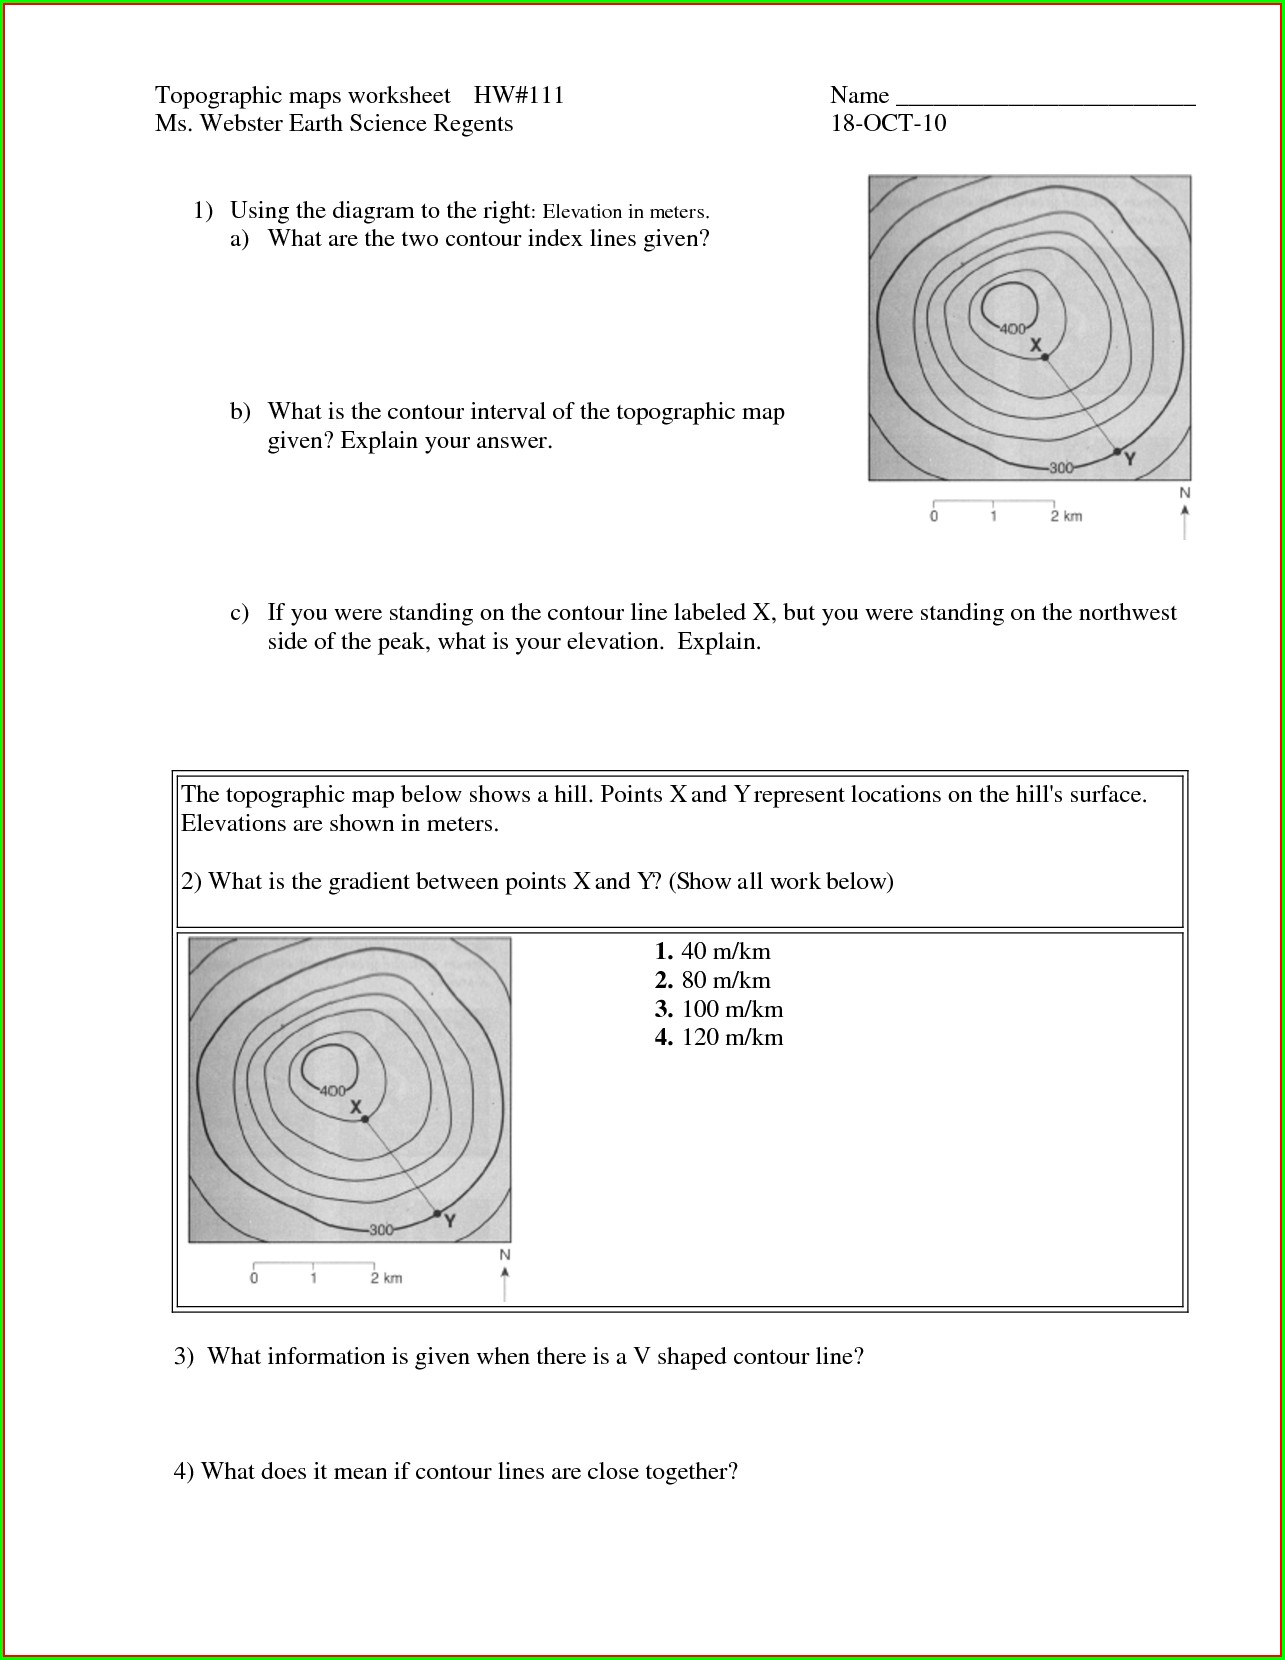 Topographic Map Worksheet #2 Answer Key